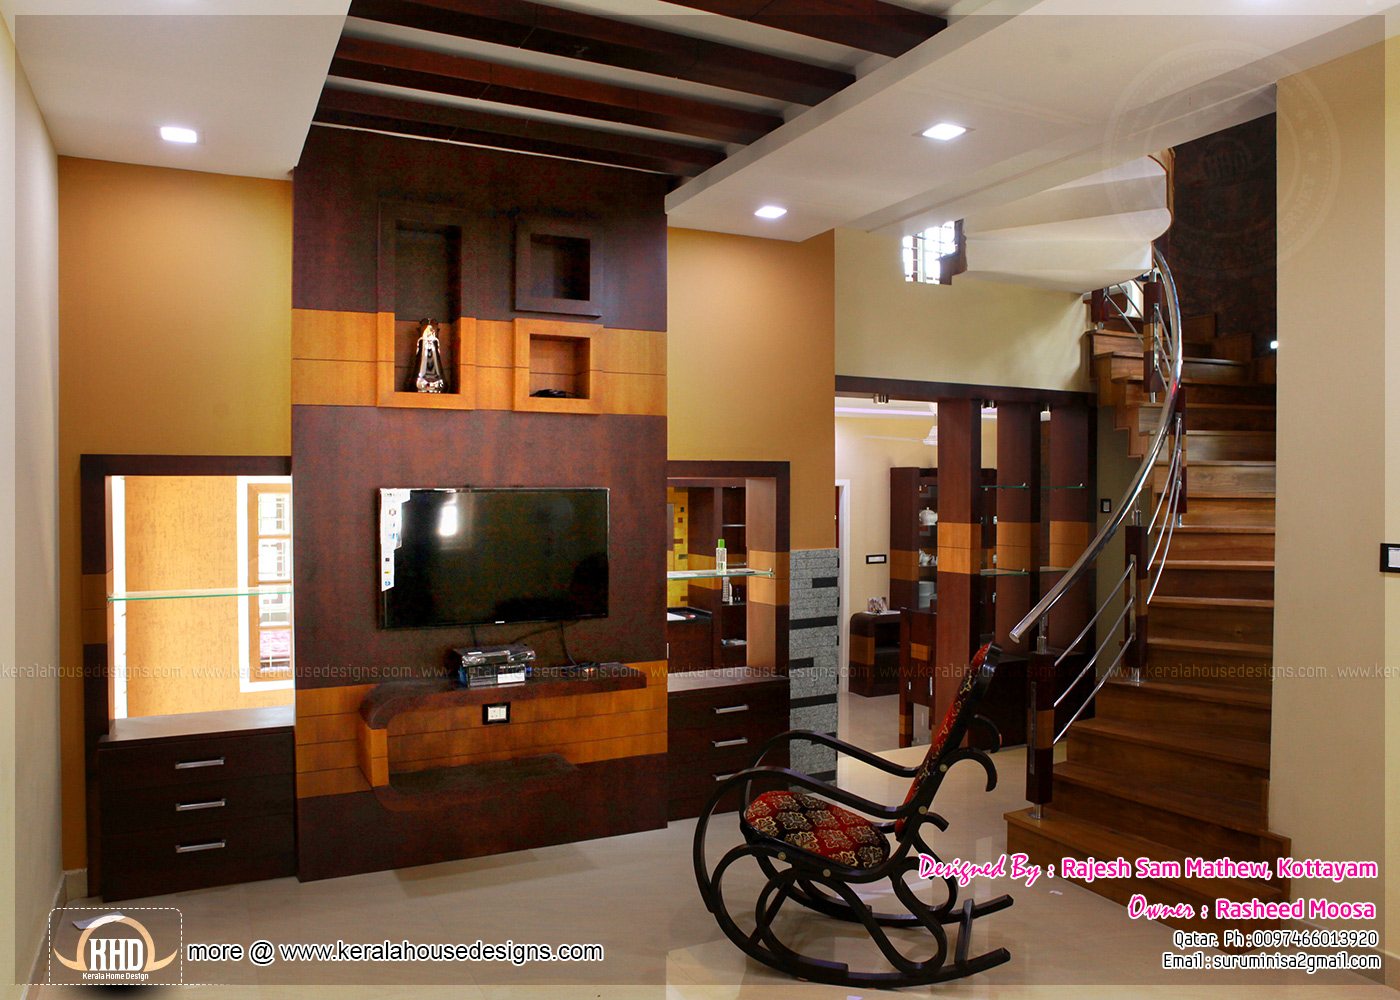 Kerala interior design with photos kerala home design for New house interior ideas